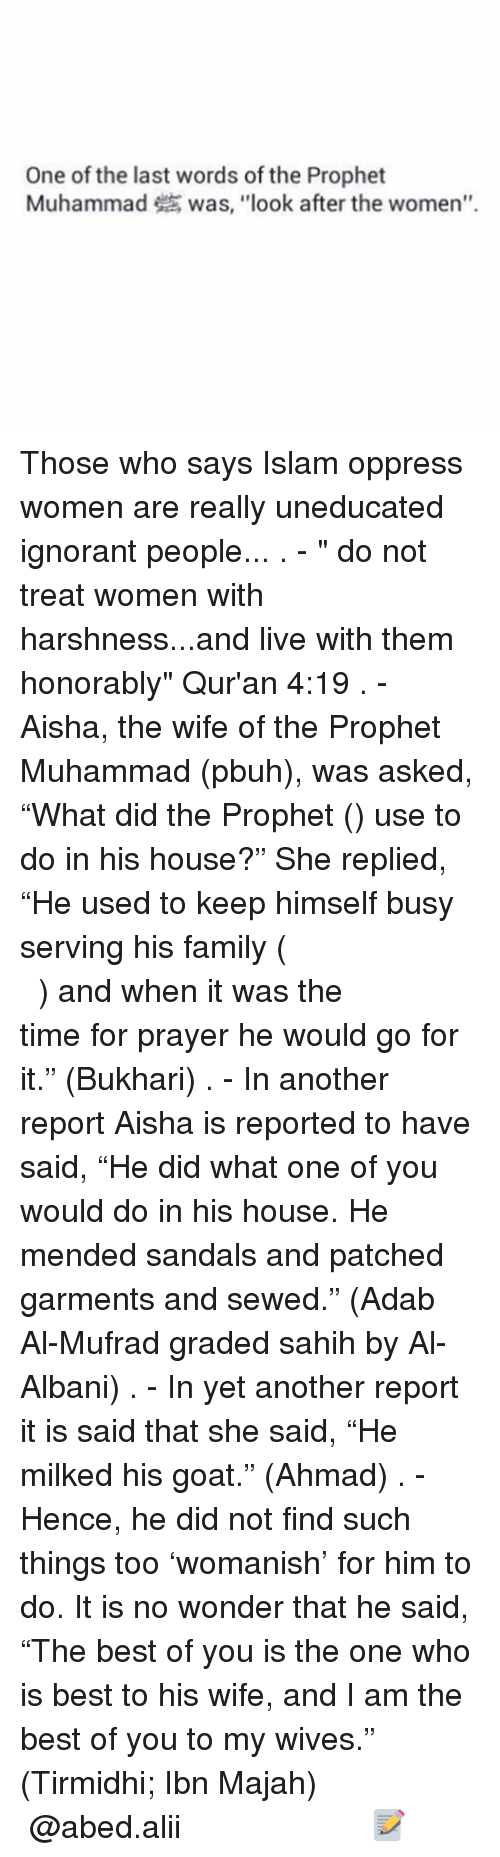 """The Prophet: One of the last words of the Prophet  Muhammad was, """"look after the women"""". Those who says Islam oppress women are really uneducated ignorant people... . - """" do not treat women with harshness...and live with them honorably"""" Qur'an 4:19 . - Aisha, the wife of the Prophet Muhammad (pbuh), was asked, """"What did the Prophet (ﷺ) use to do in his house?"""" She replied, """"He used to keep himself busy serving his family (كَانَ يَكُونُ فِي مِهْنَةِ أَهْلِهِ) and when it was the time for prayer he would go for it."""" (Bukhari) . - In another report Aisha is reported to have said, """"He did what one of you would do in his house. He mended sandals and patched garments and sewed."""" (Adab Al-Mufrad graded sahih by Al-Albani) . - In yet another report it is said that she said, """"He milked his goat."""" (Ahmad) . - Hence, he did not find such things too 'womanish' for him to do. It is no wonder that he said, """"The best of you is the one who is best to his wife, and I am the best of you to my wives."""" (Tirmidhi; Ibn Majah) ▃▃▃▃▃▃▃▃▃▃▃▃▃▃▃▃▃▃▃▃ @abed.alii 📝"""